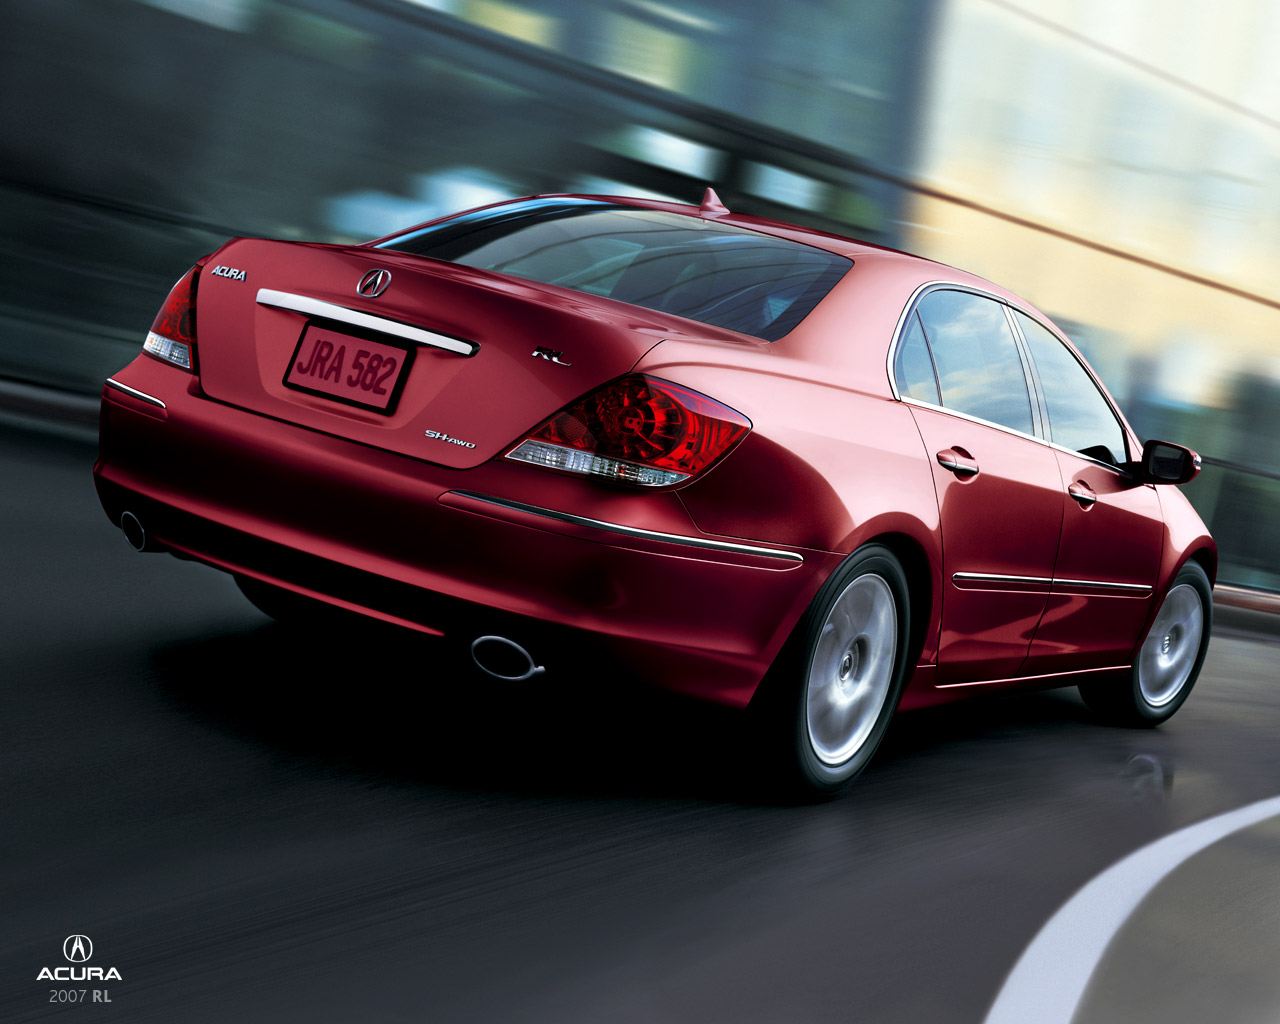 Acura RL car picture